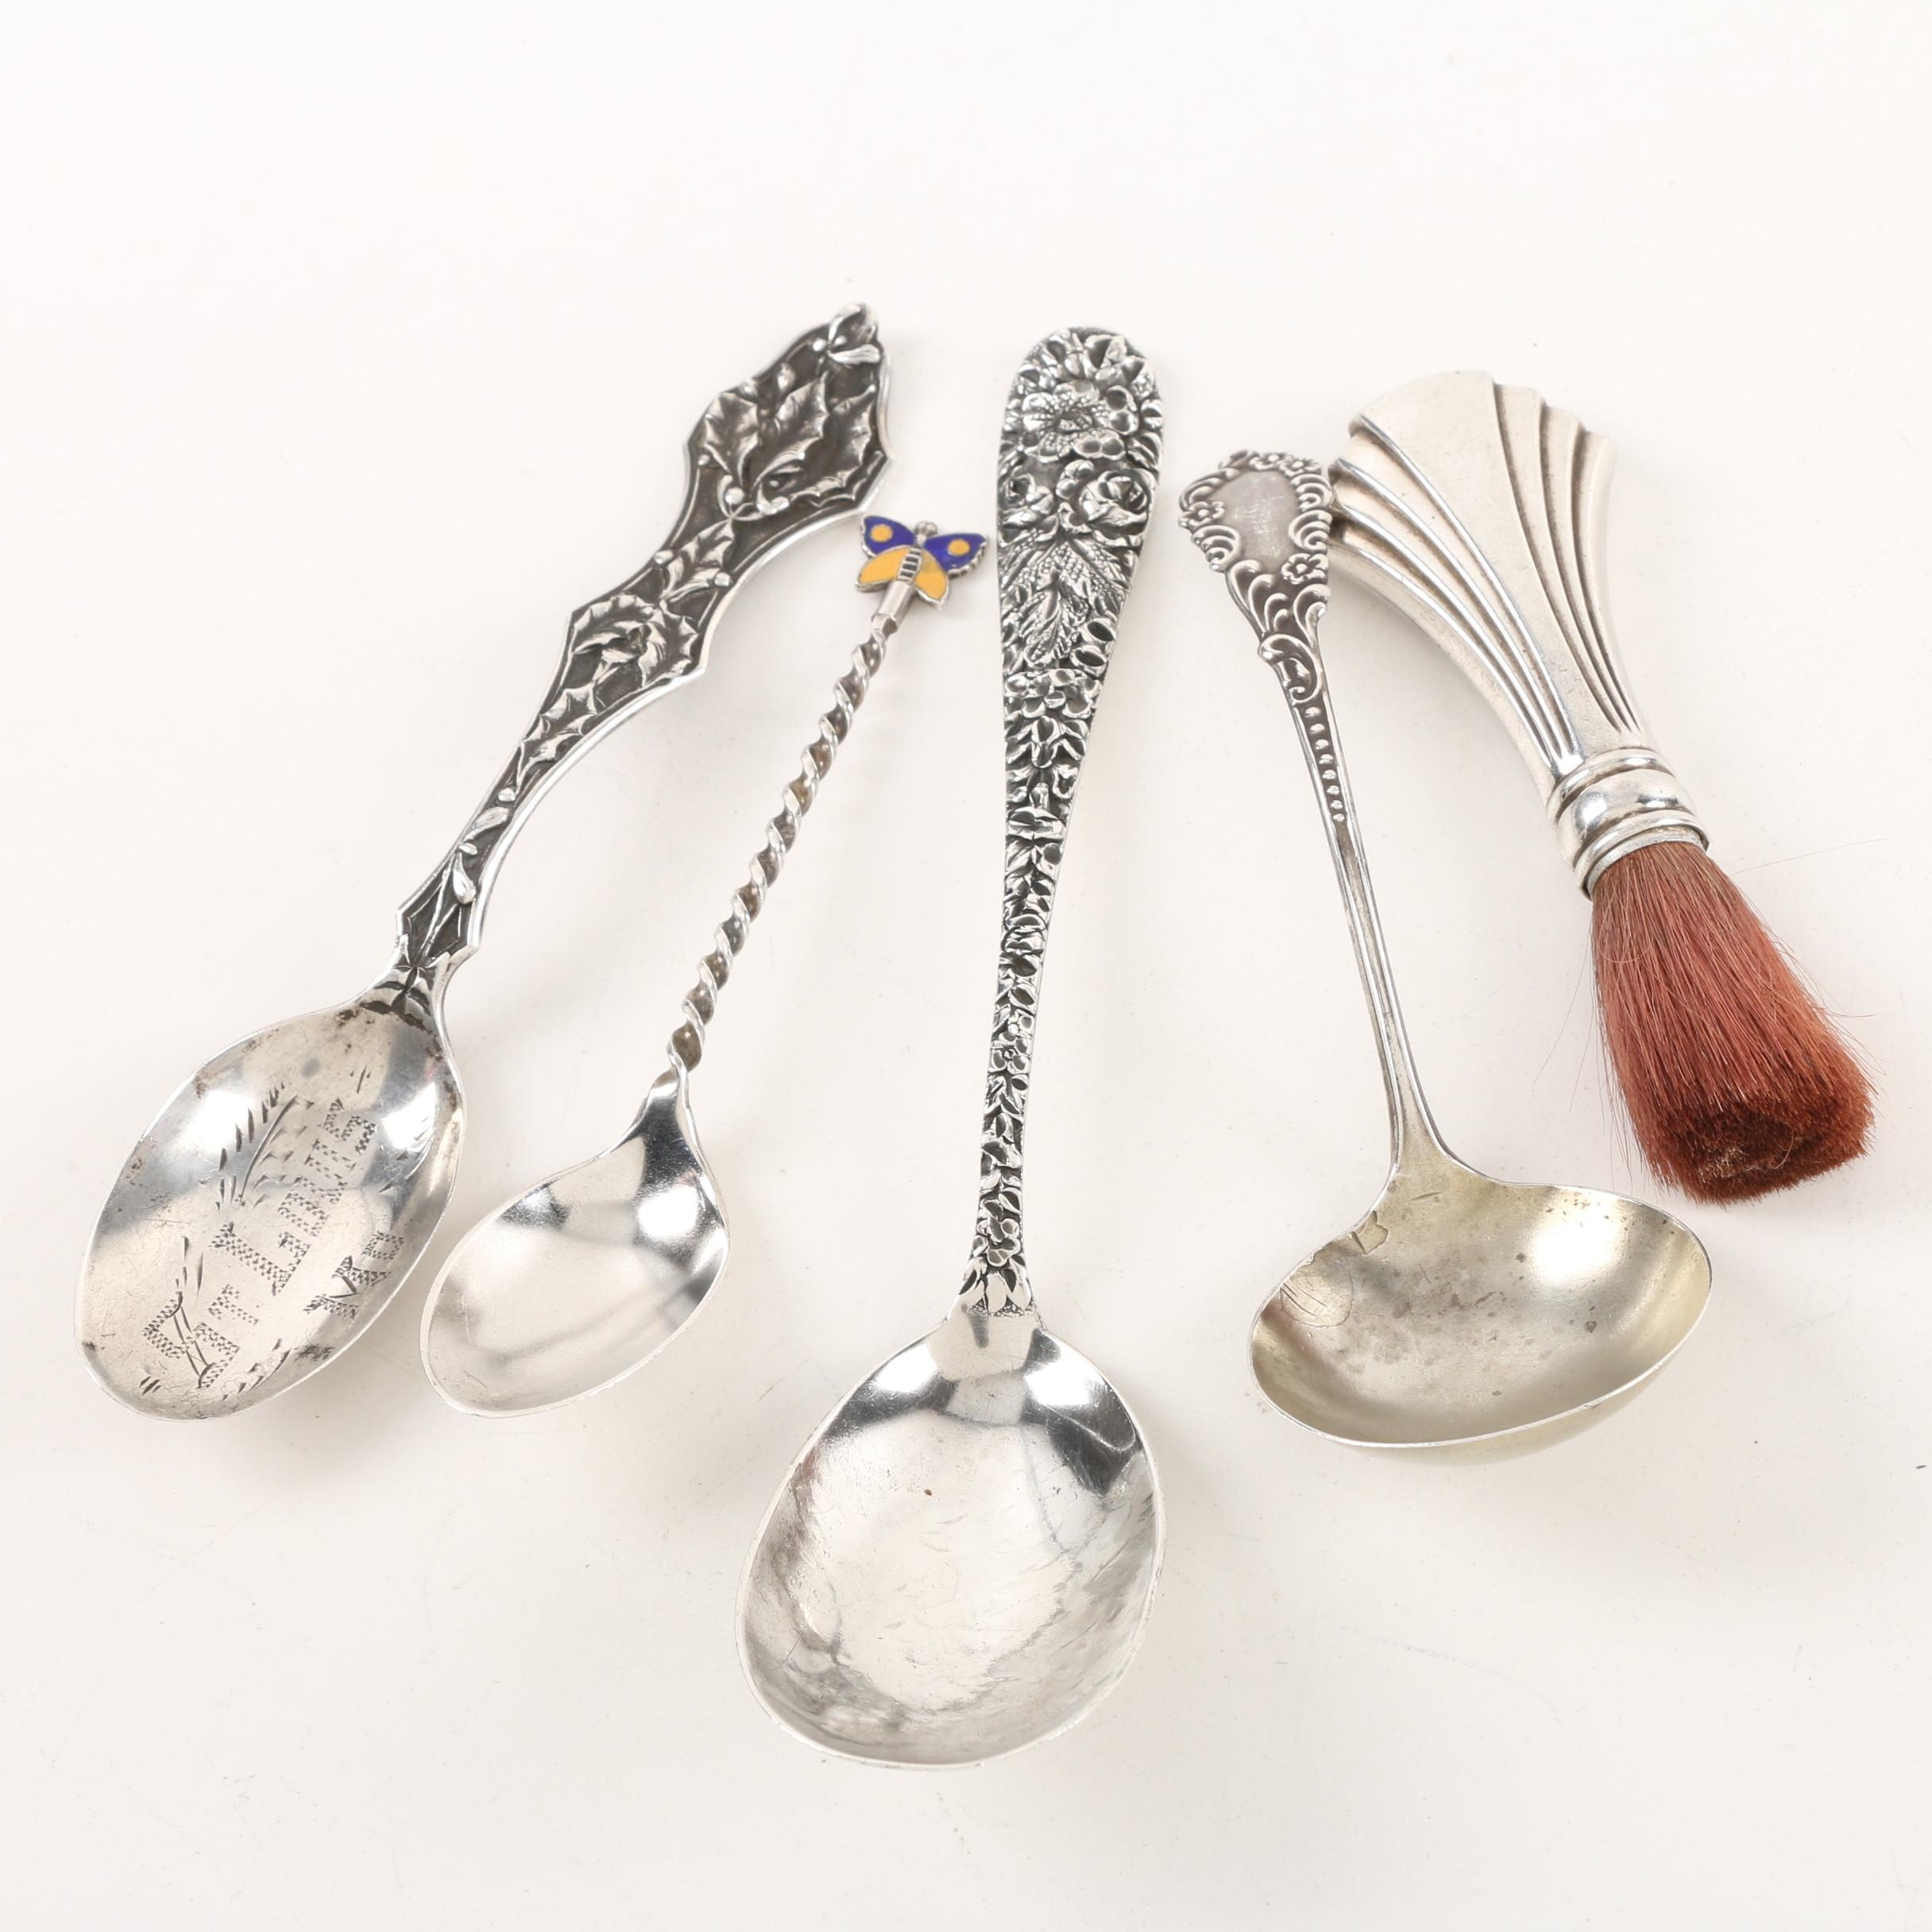 Schofield Co. Sugar Spoon with Other Sterling Flatware and Makeup Brush